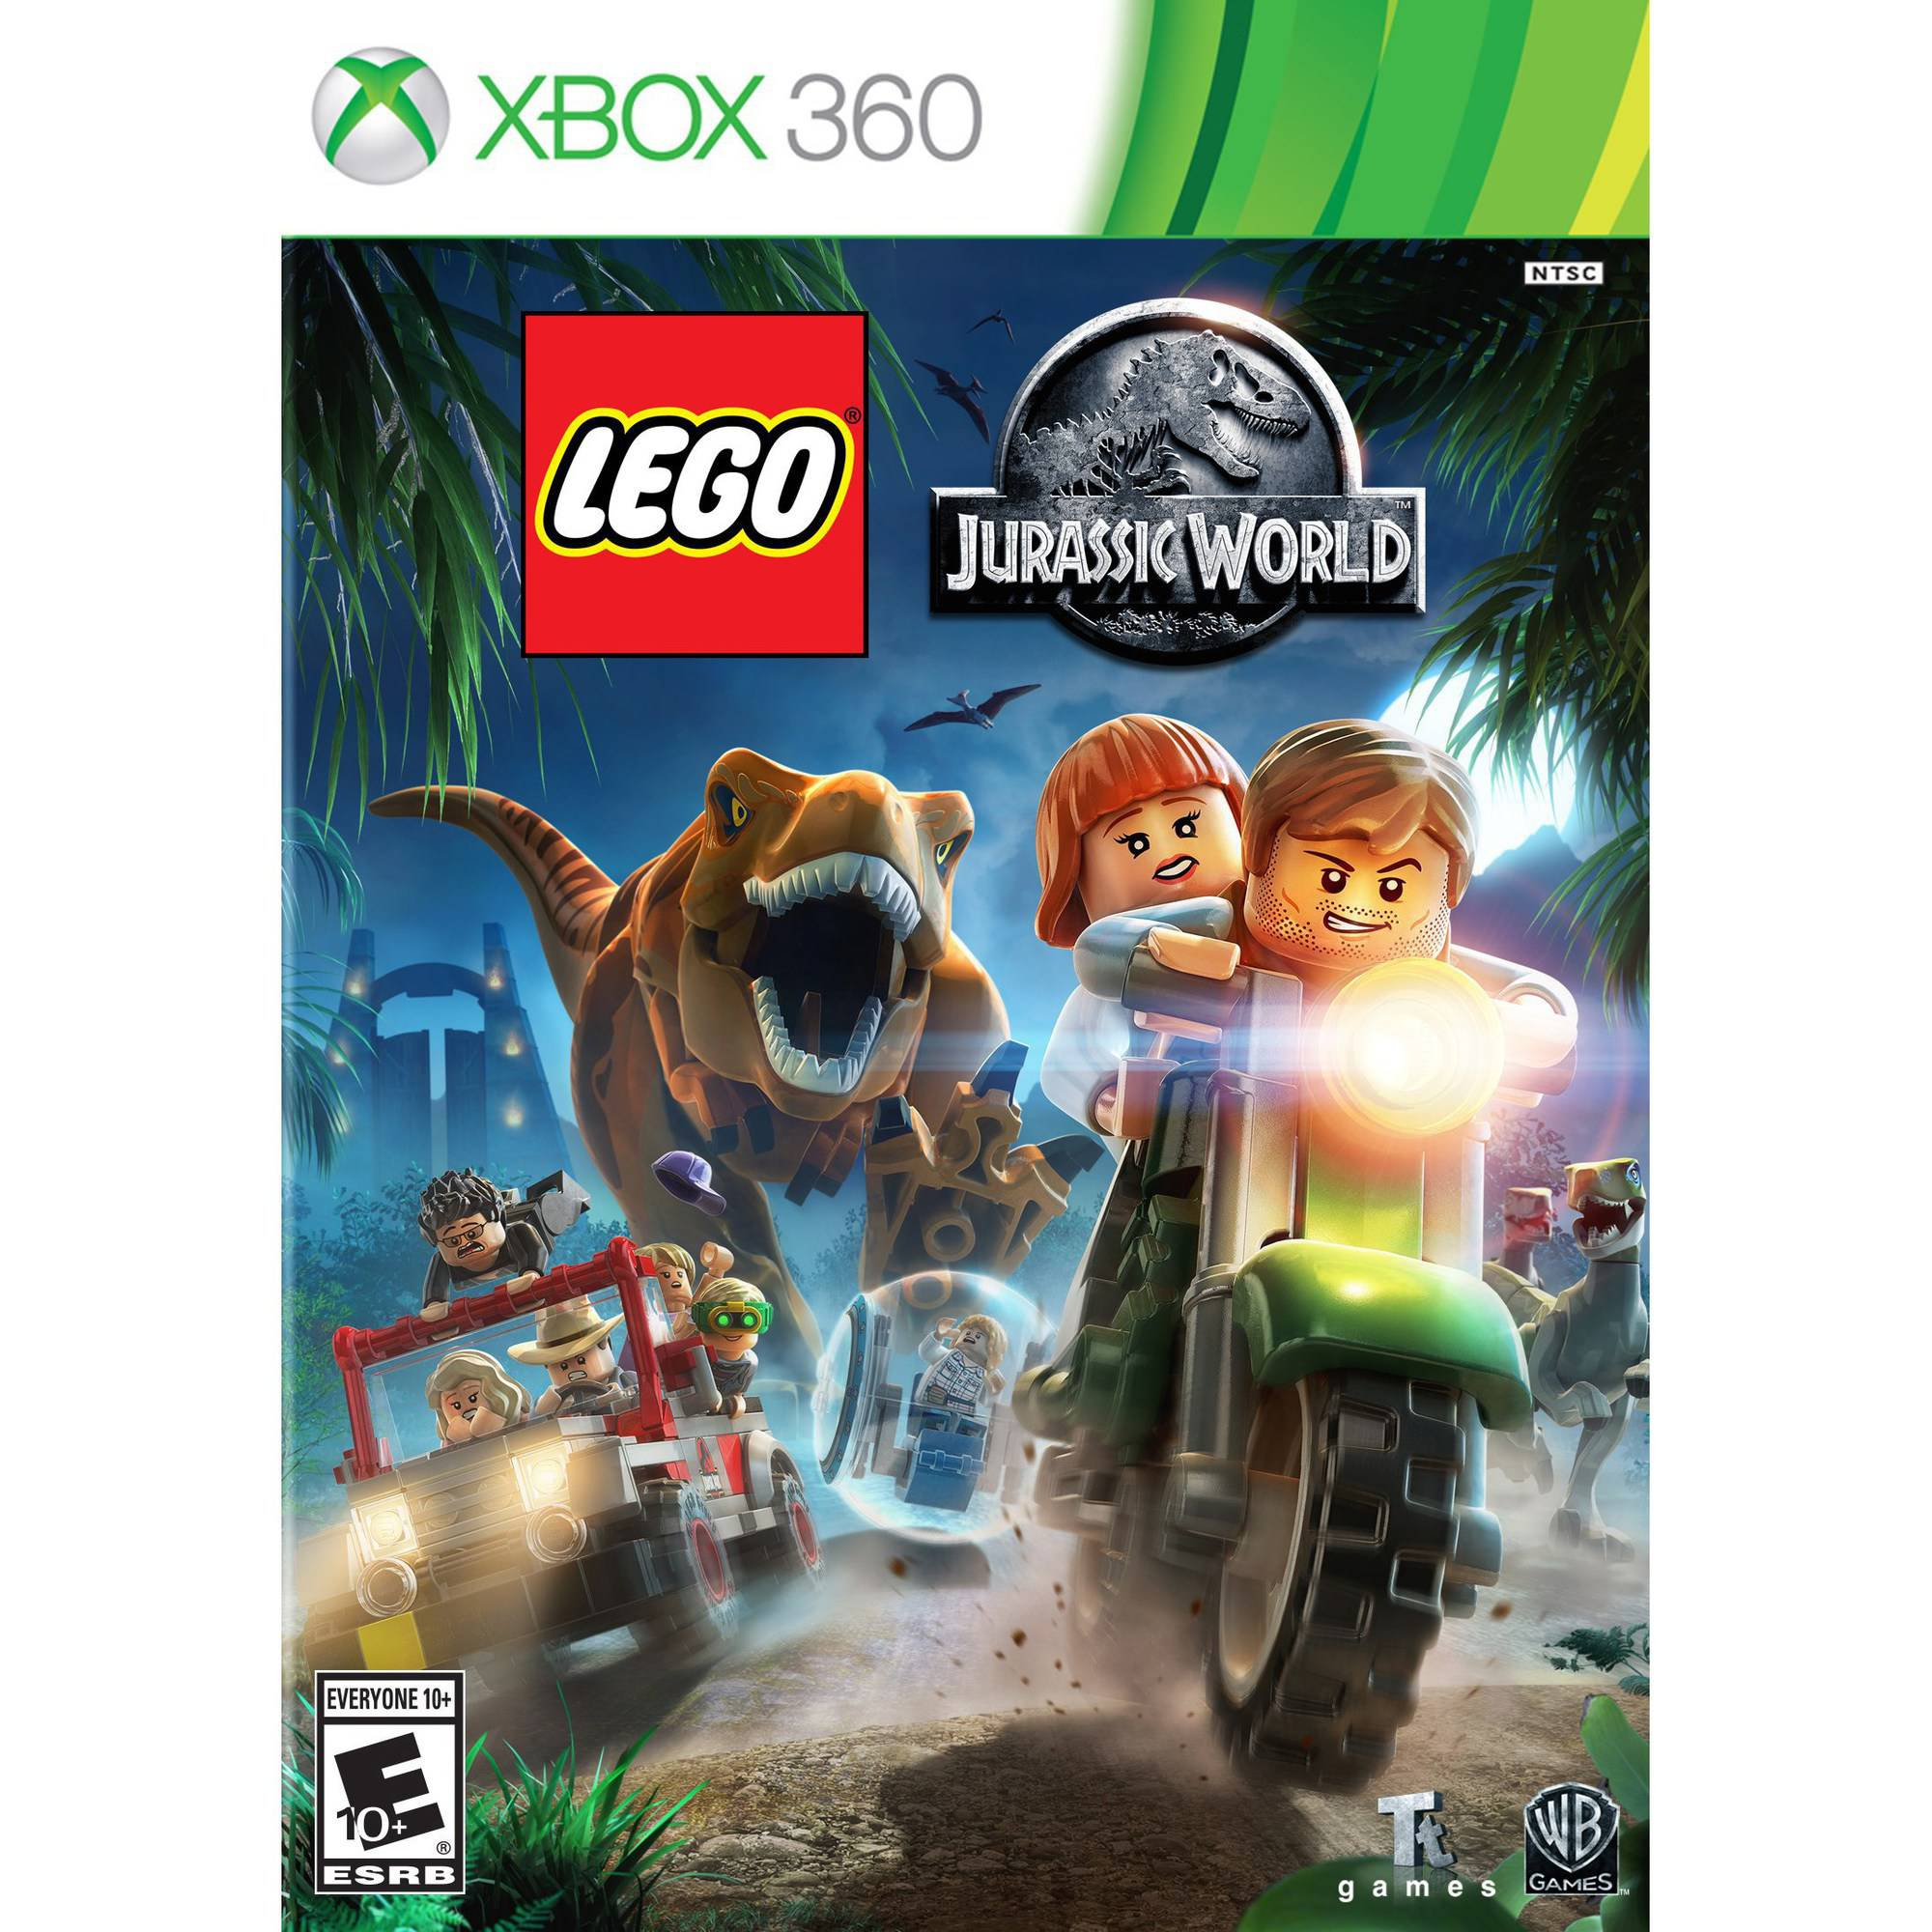 LEGO Jurassic World, Warner, Xbox 360, 883929472710